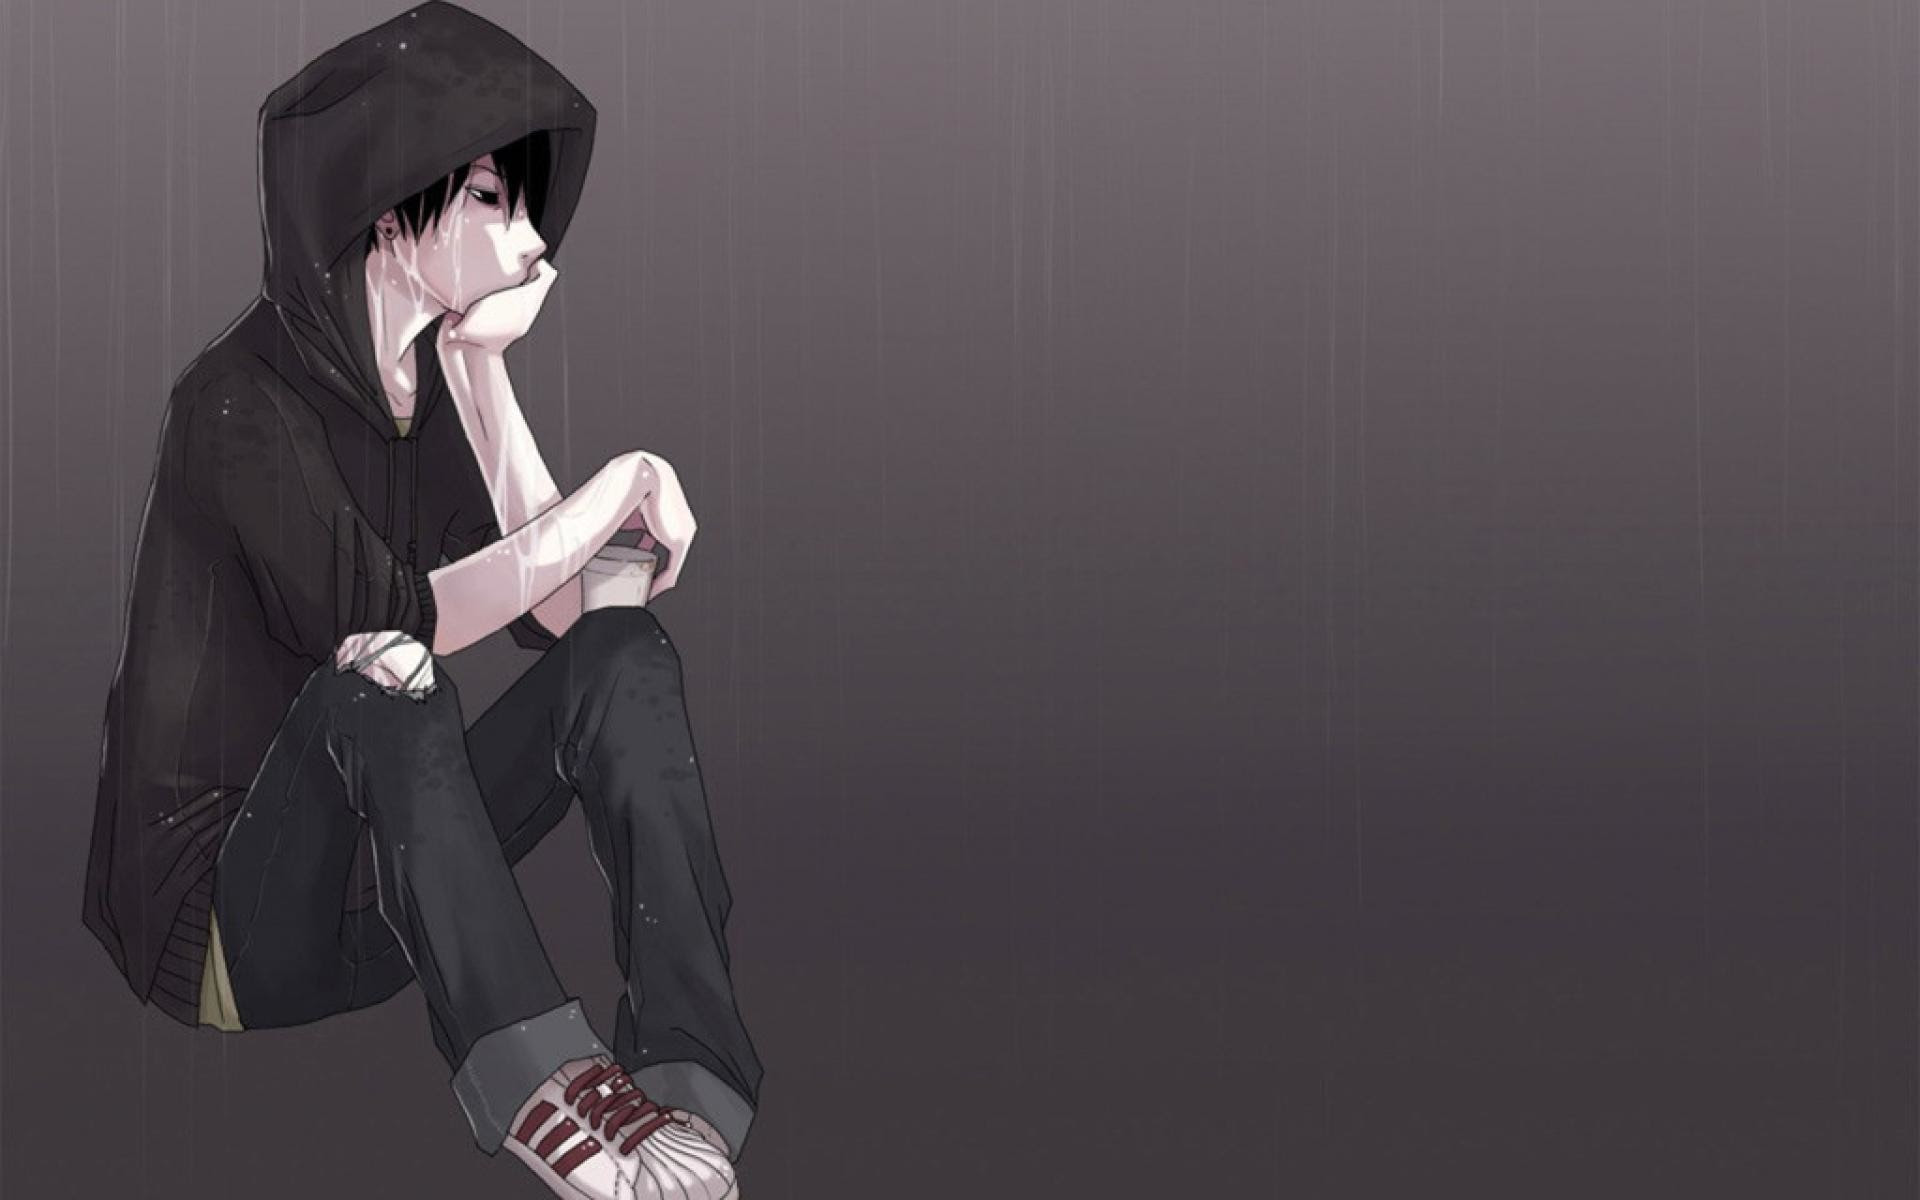 Unduh 61 Koleksi Wallpaper Hd Anime Sad Boy HD Terbaru